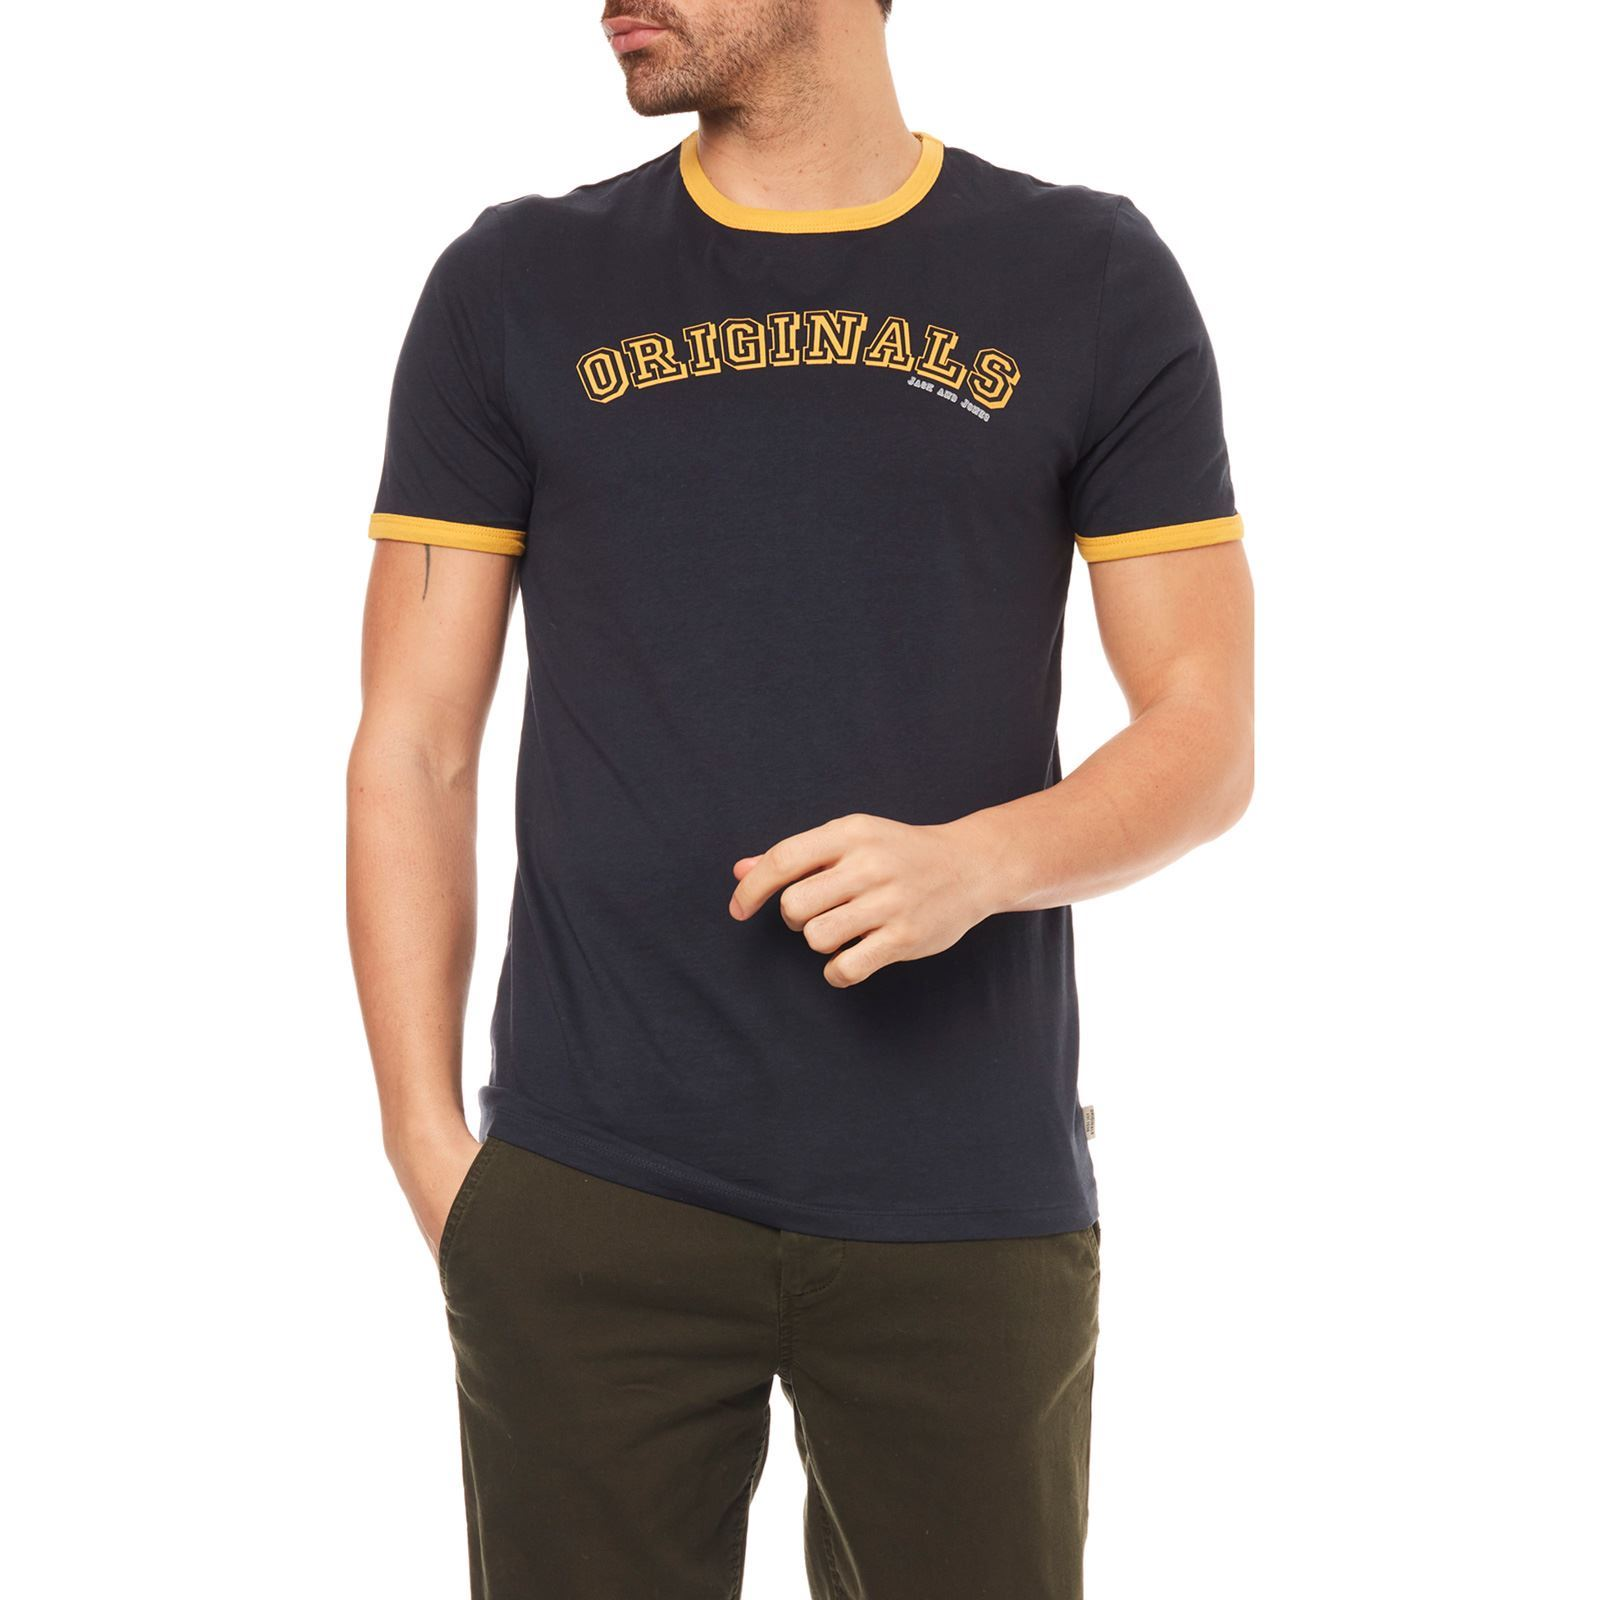 Jones JornewlegendKurzärmeliges KragenRund shirt Jackamp; Marineblau T DbeHI2YWE9